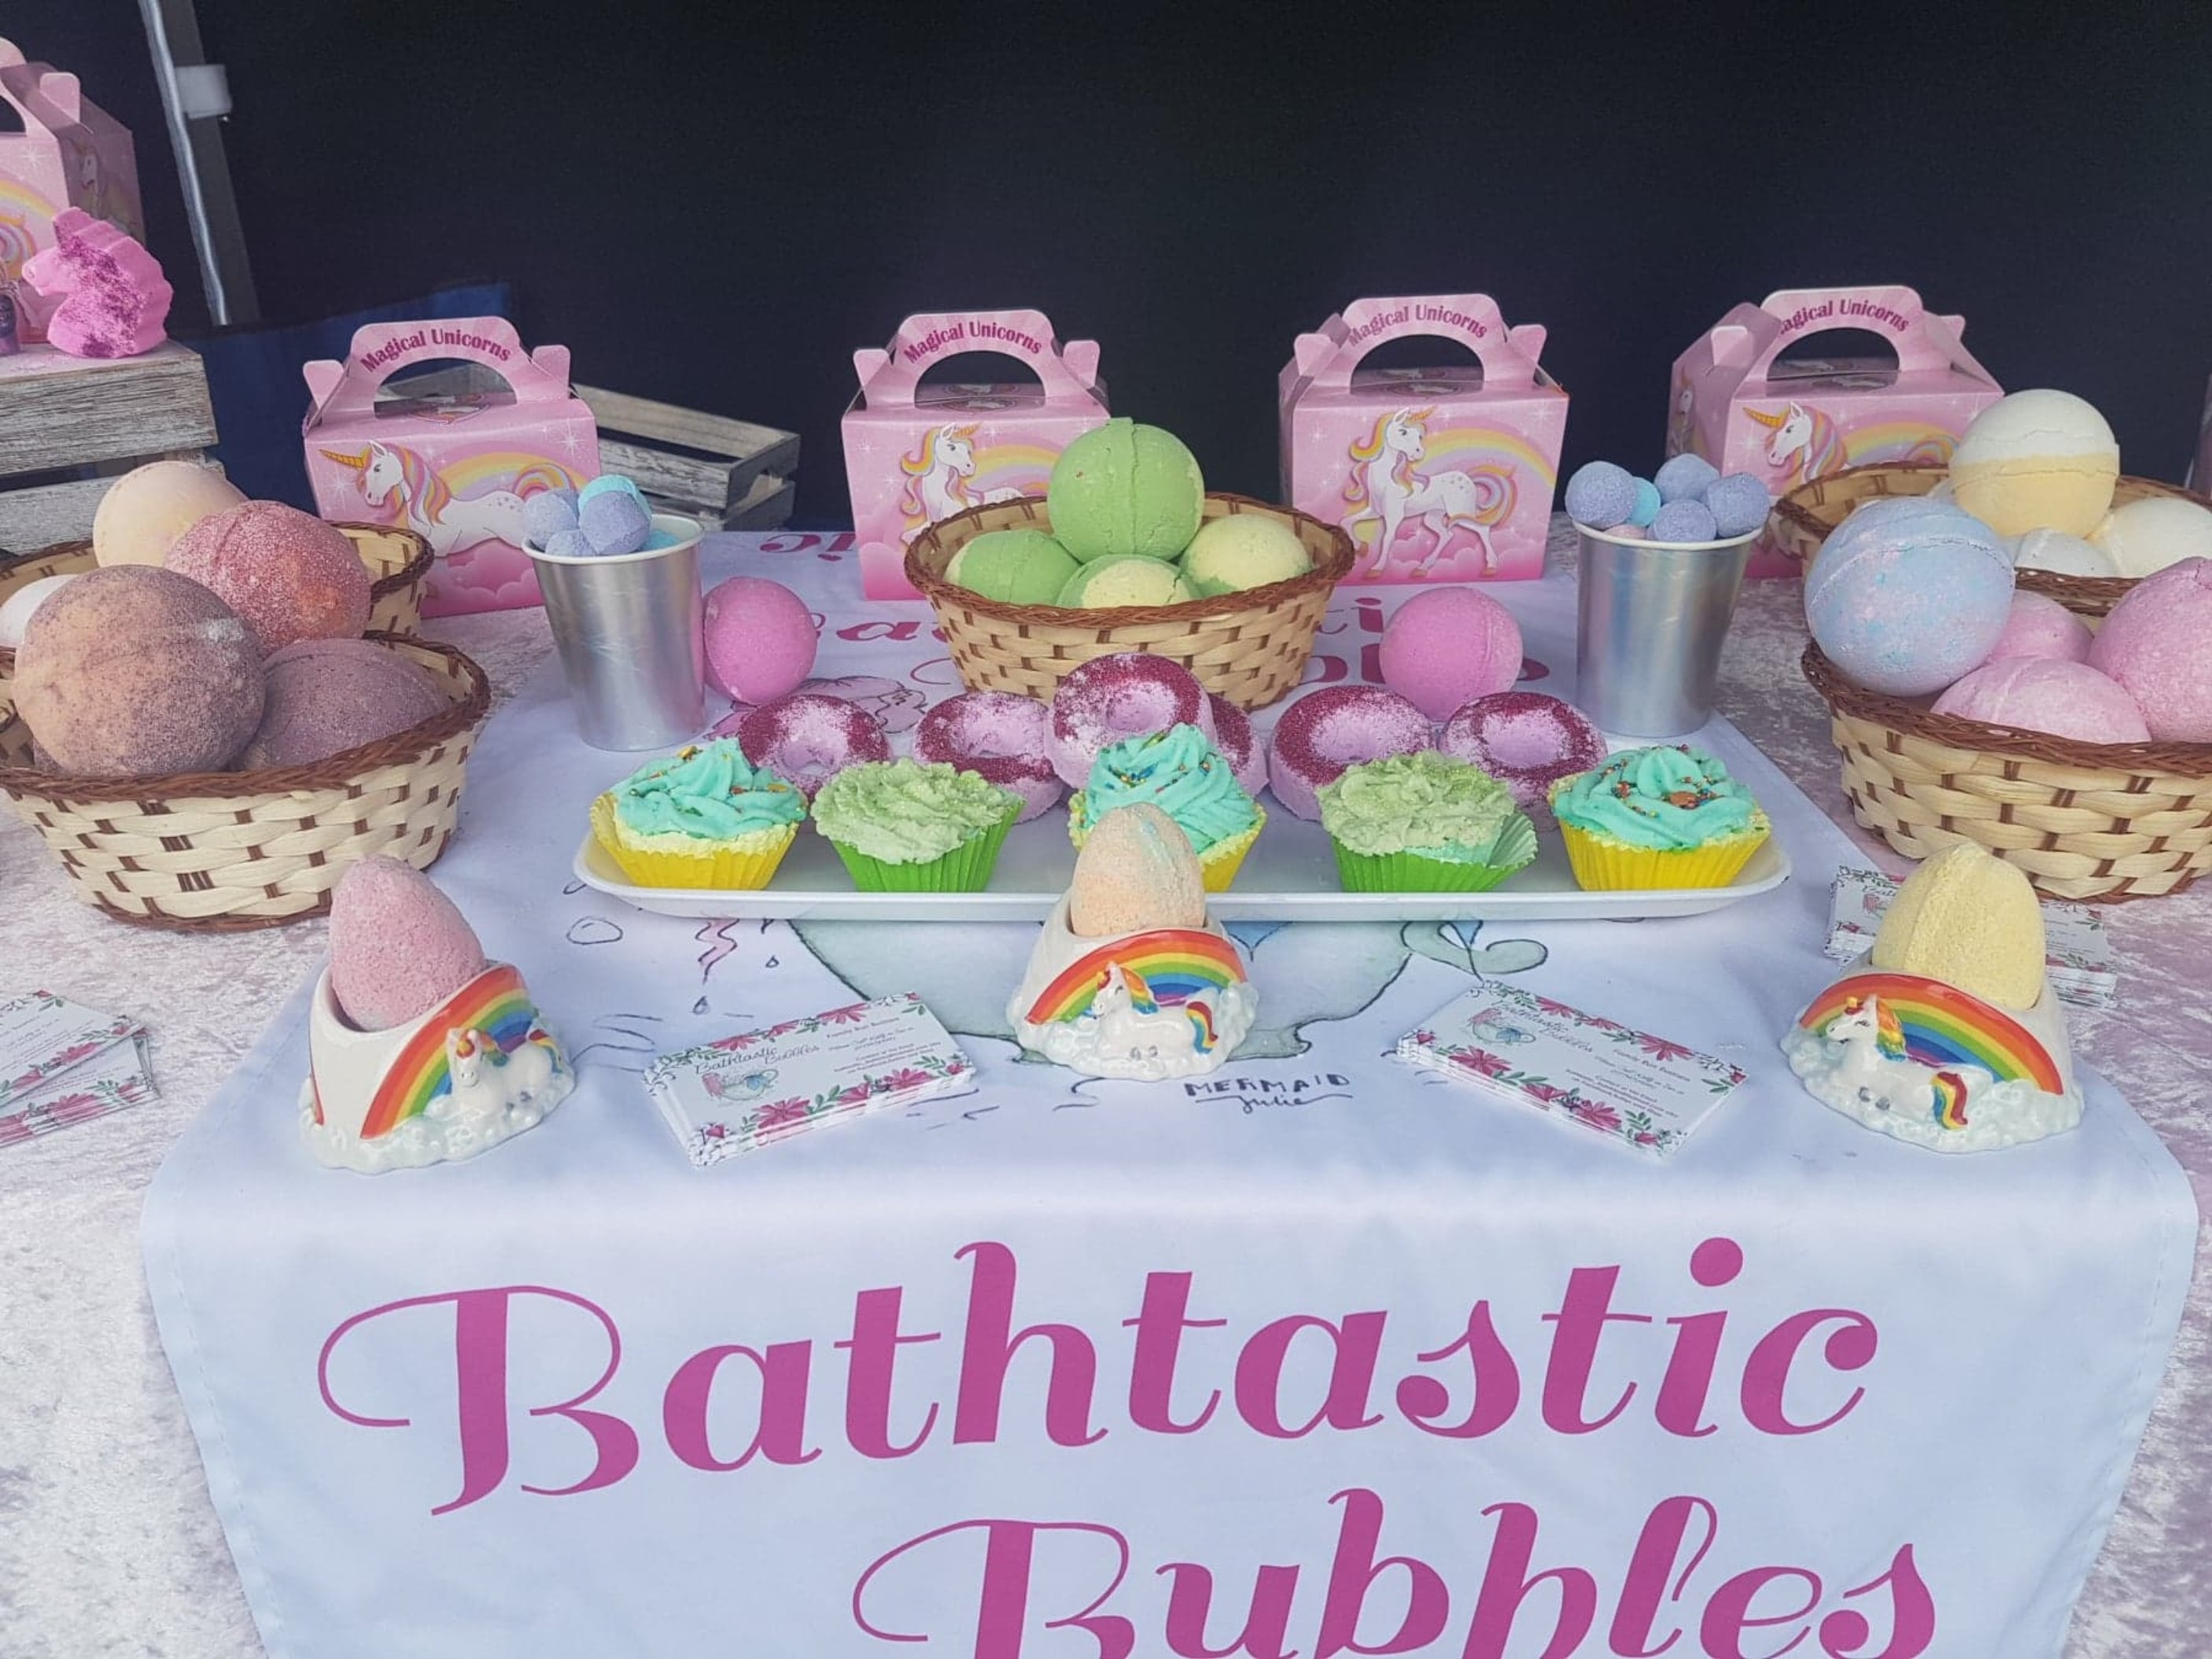 Bathtastic Bubbles is a family run business, we hand make everything and we attend many events. We pride ourselves on customer service. If you don't see what you are looking for no worries drop me a message and I will see what I can do.